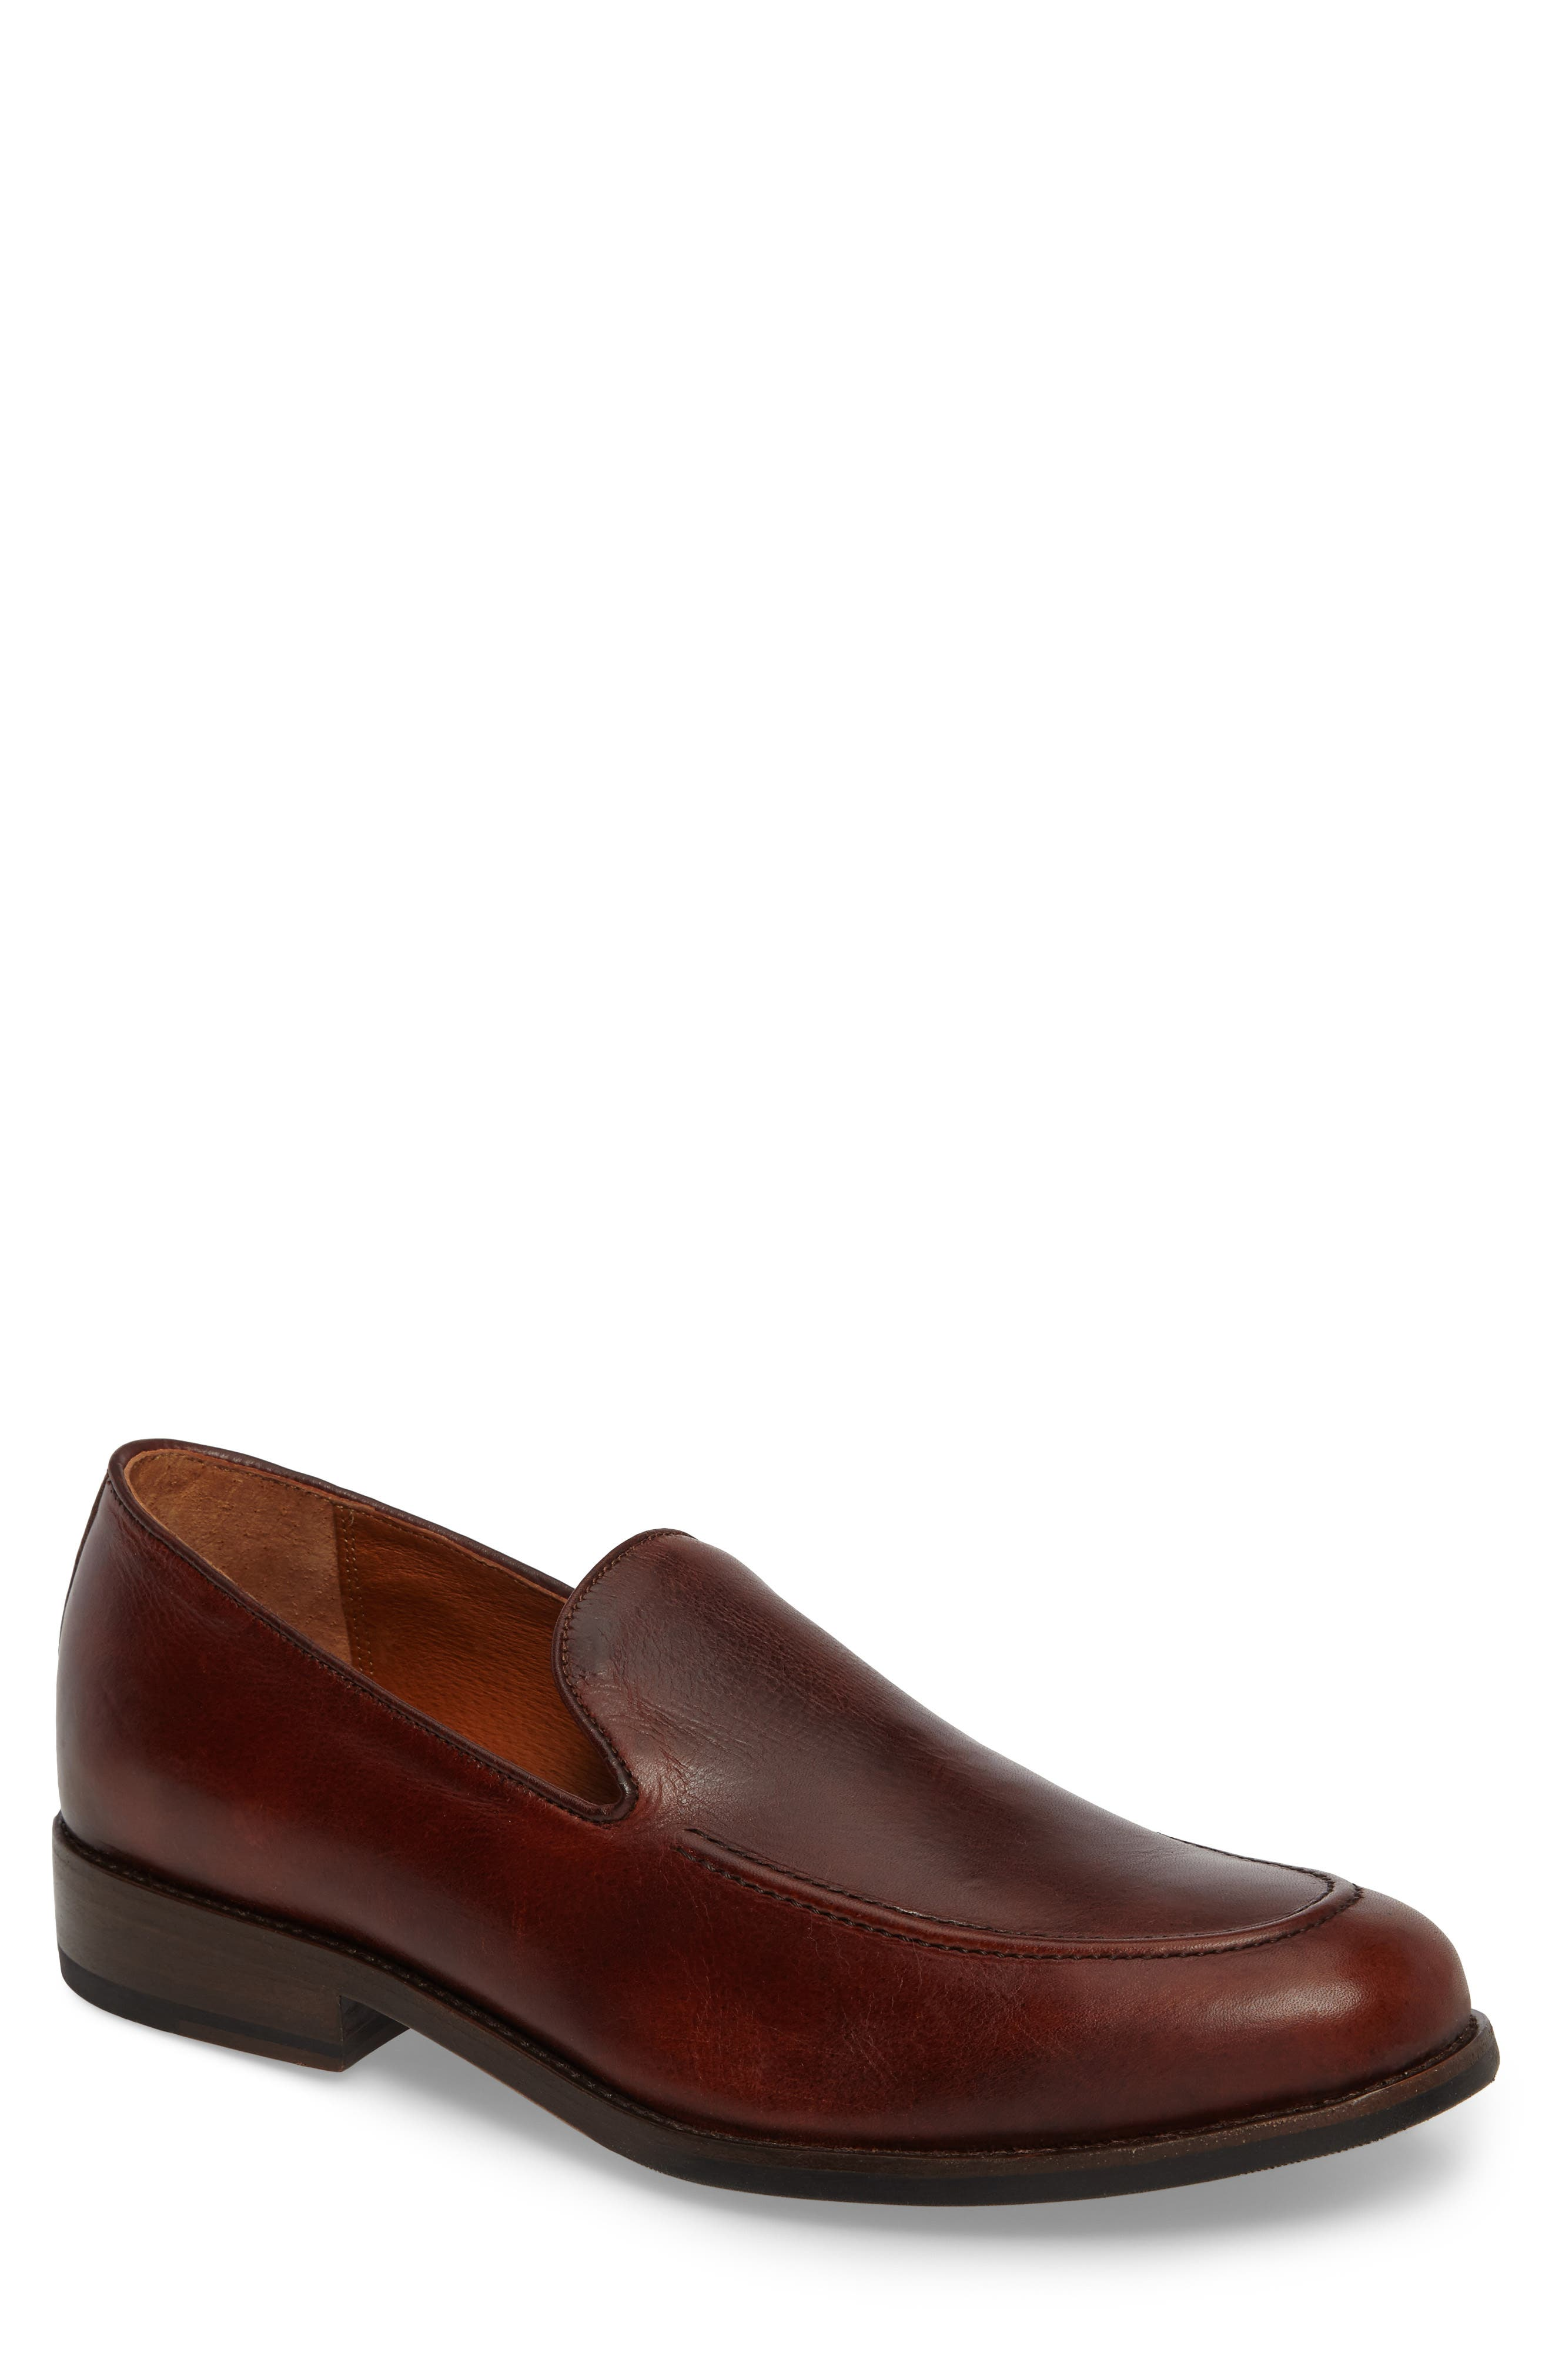 Jefferson Venetian Loafer,                         Main,                         color, BROWN